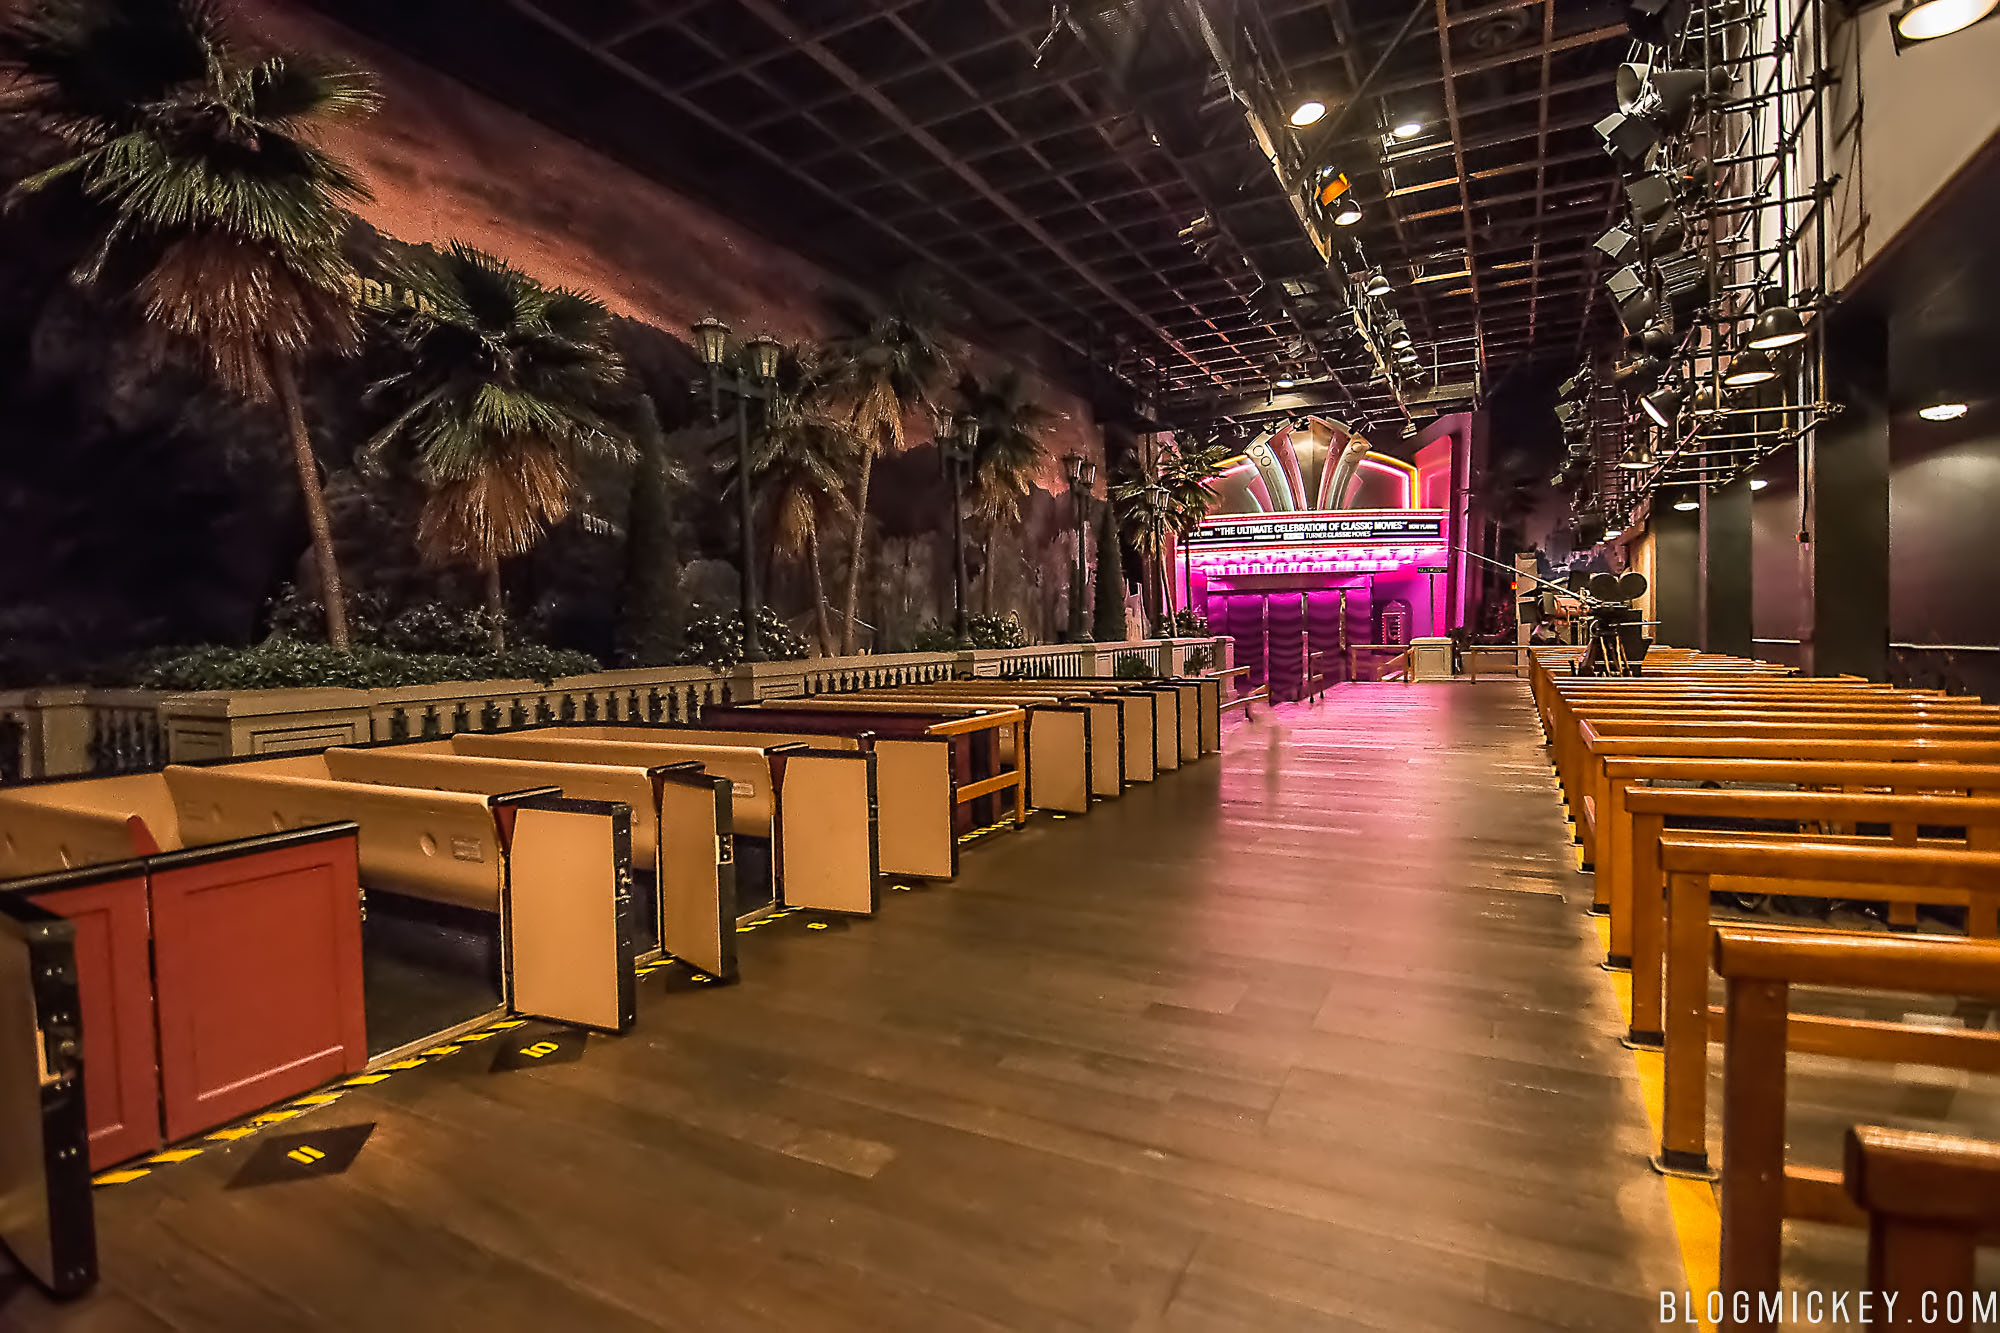 EVENT: Walk Through the Great Movie Ride on August 11th - Blog Mickey